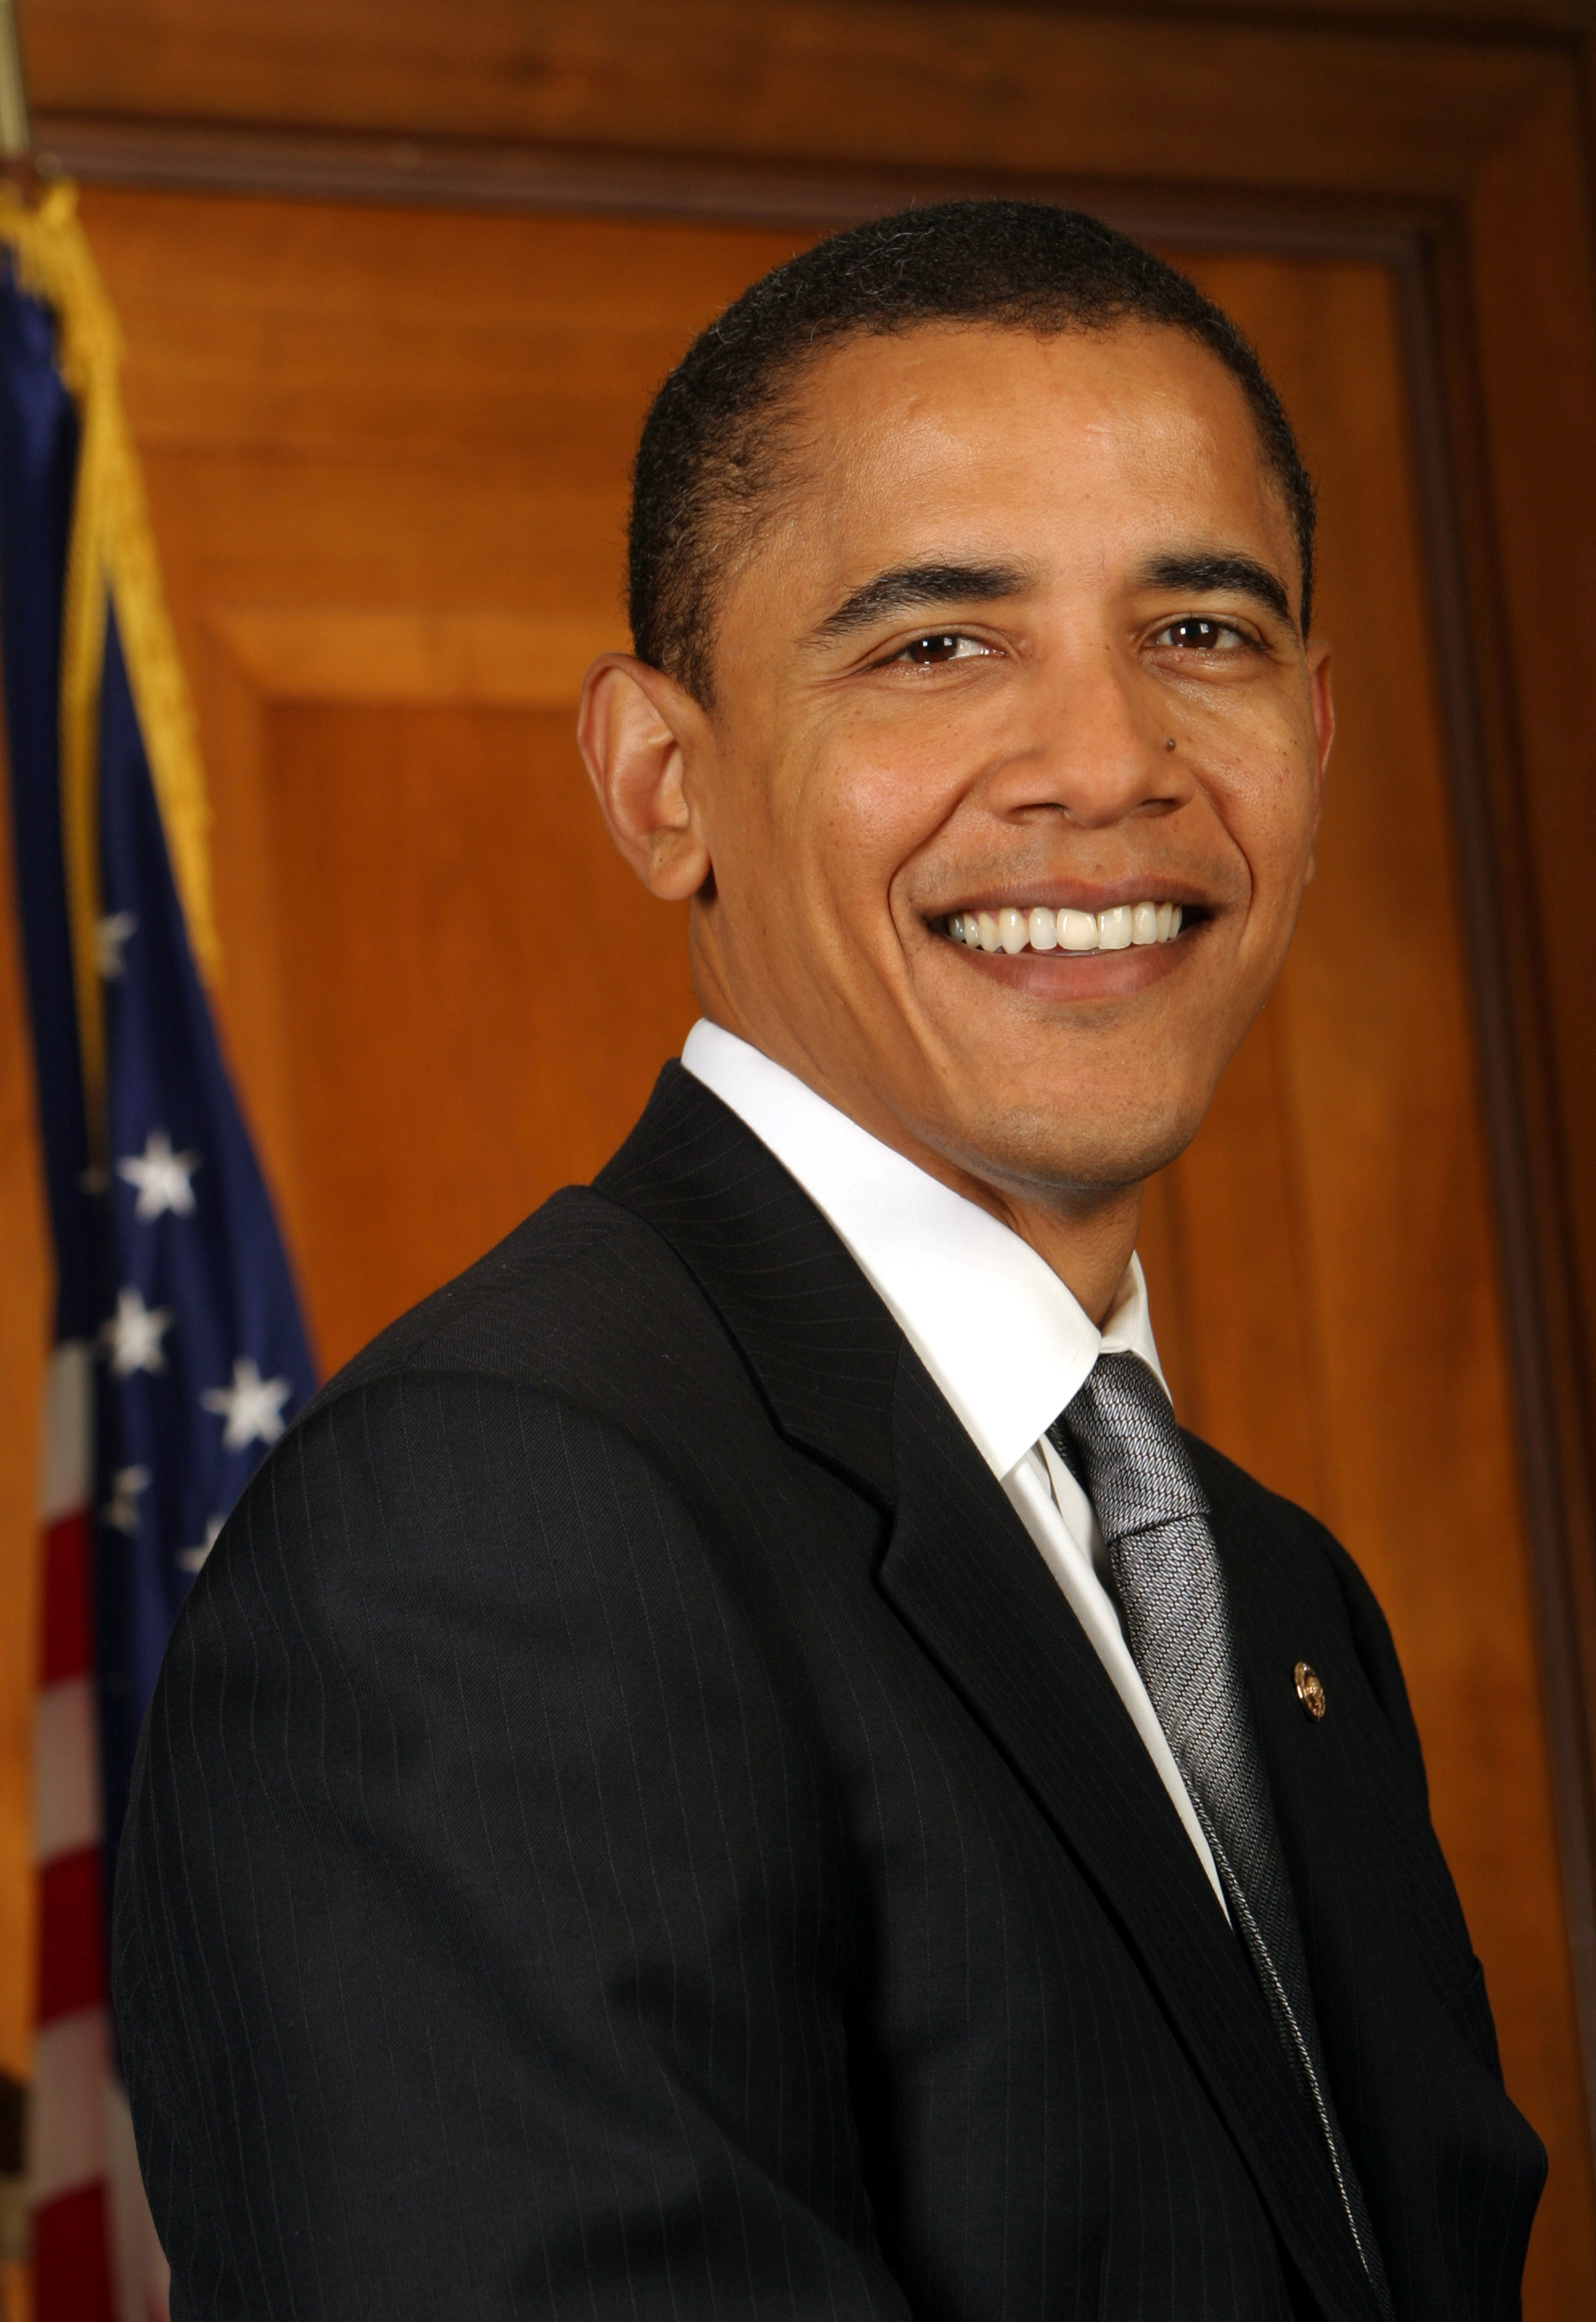 http://upload.wikimedia.org/wikipedia/commons/1/1f/BarackObama2005portrait.jpg